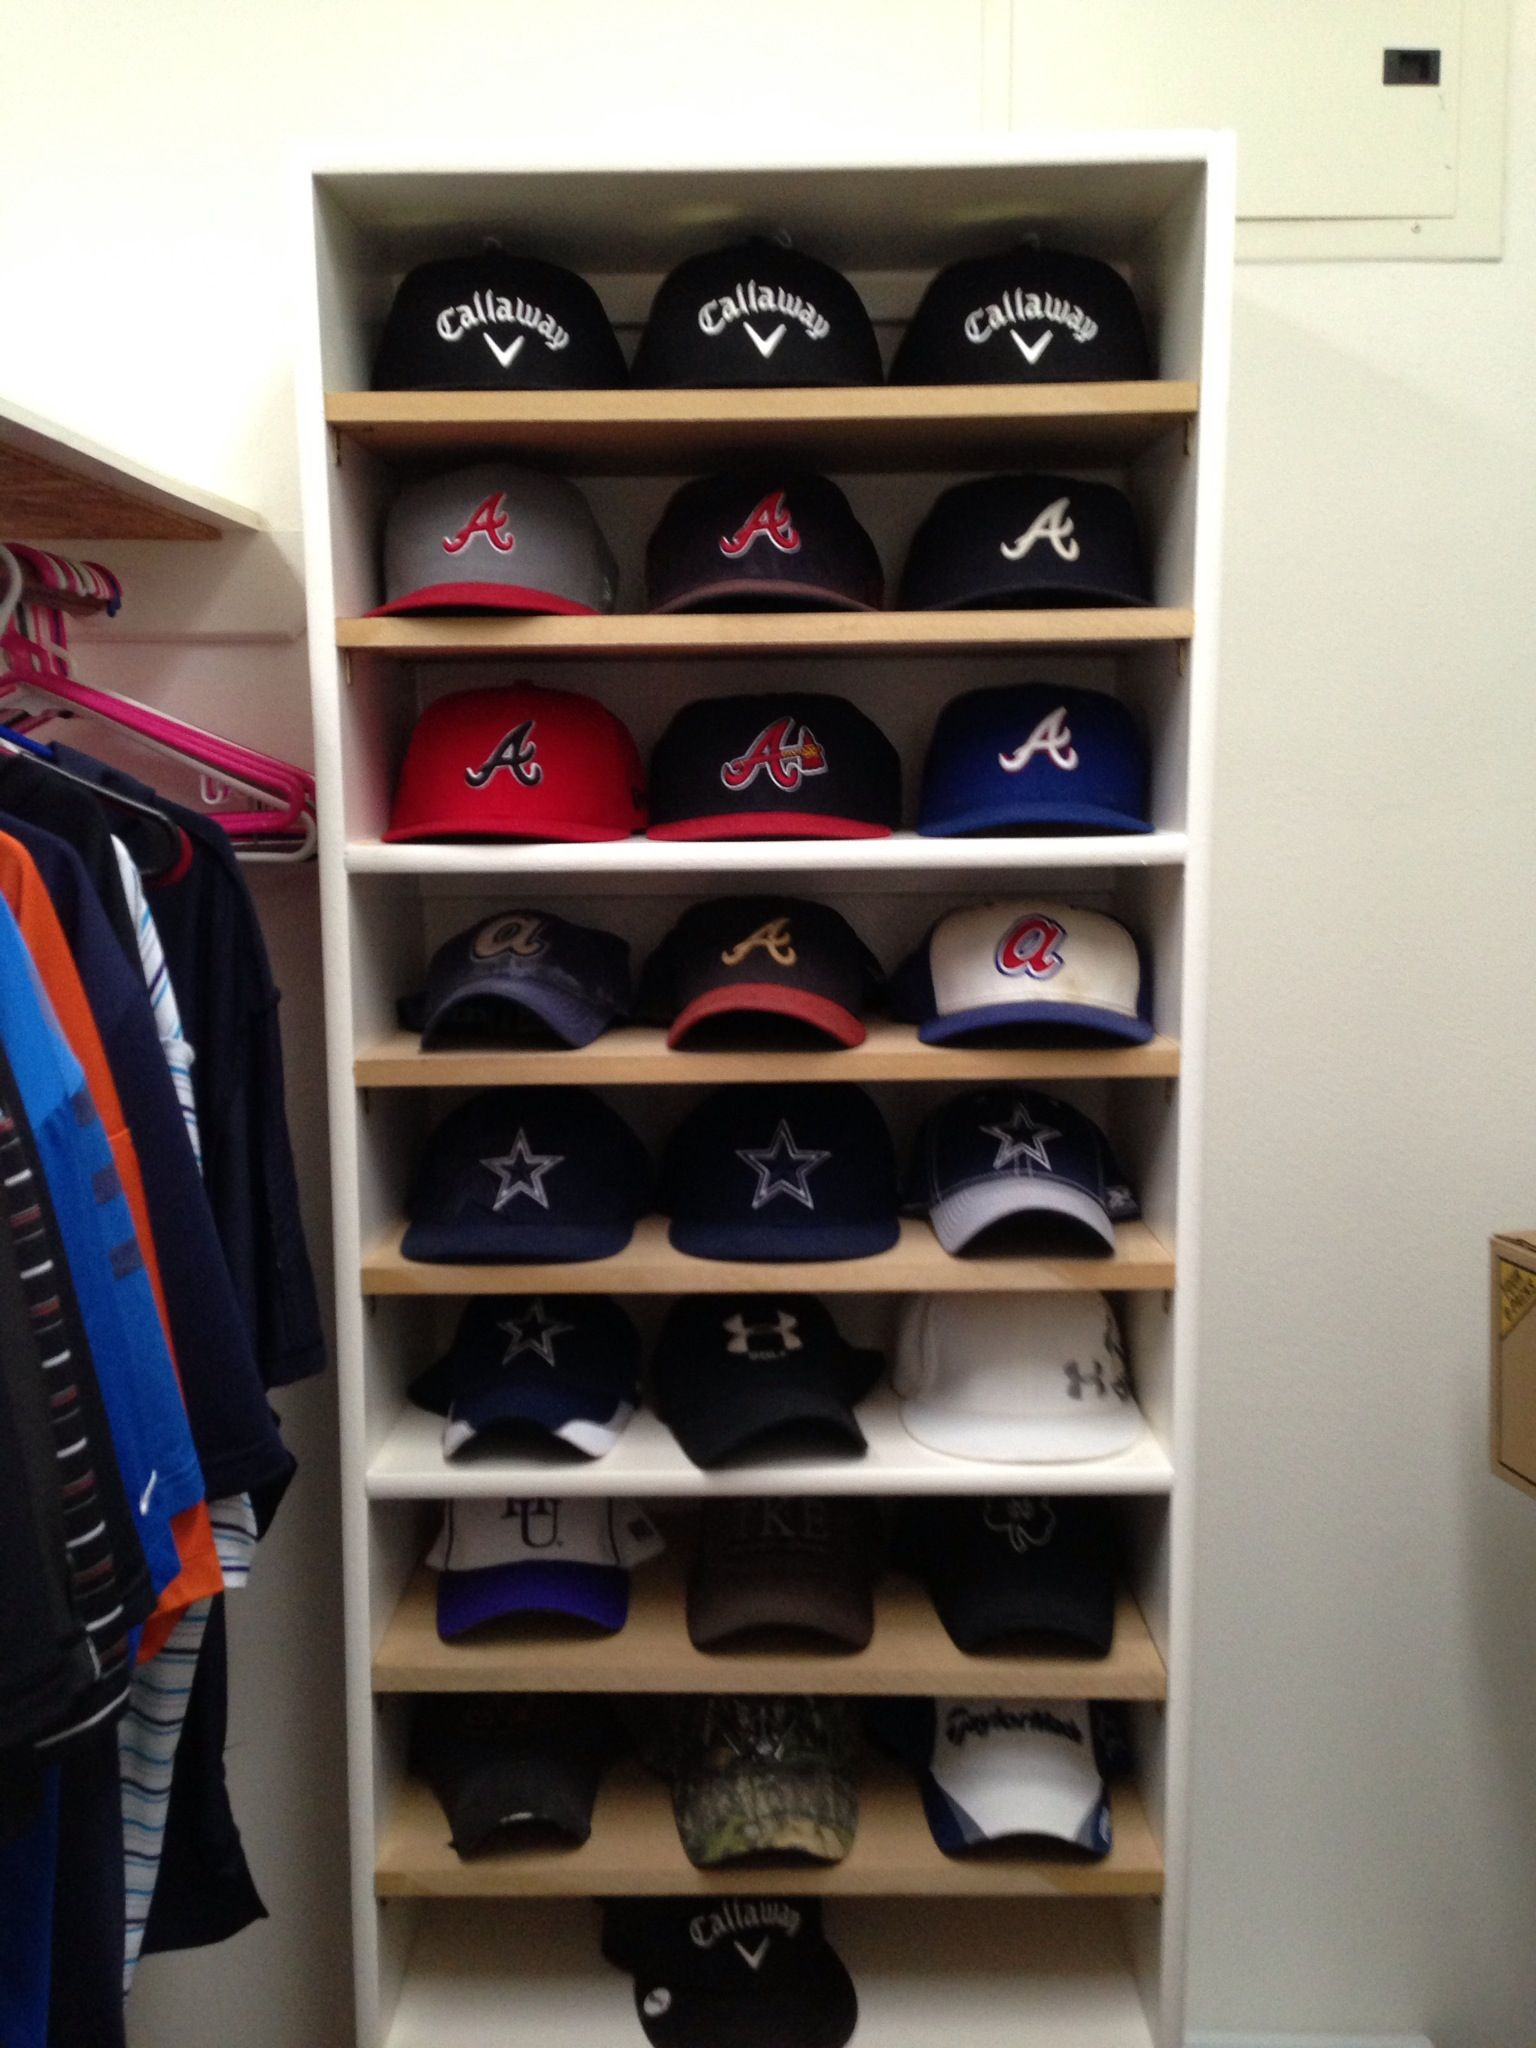 Great Hat Shelf Or Rack For Baseball Caps. Go Braves And Cowboys!